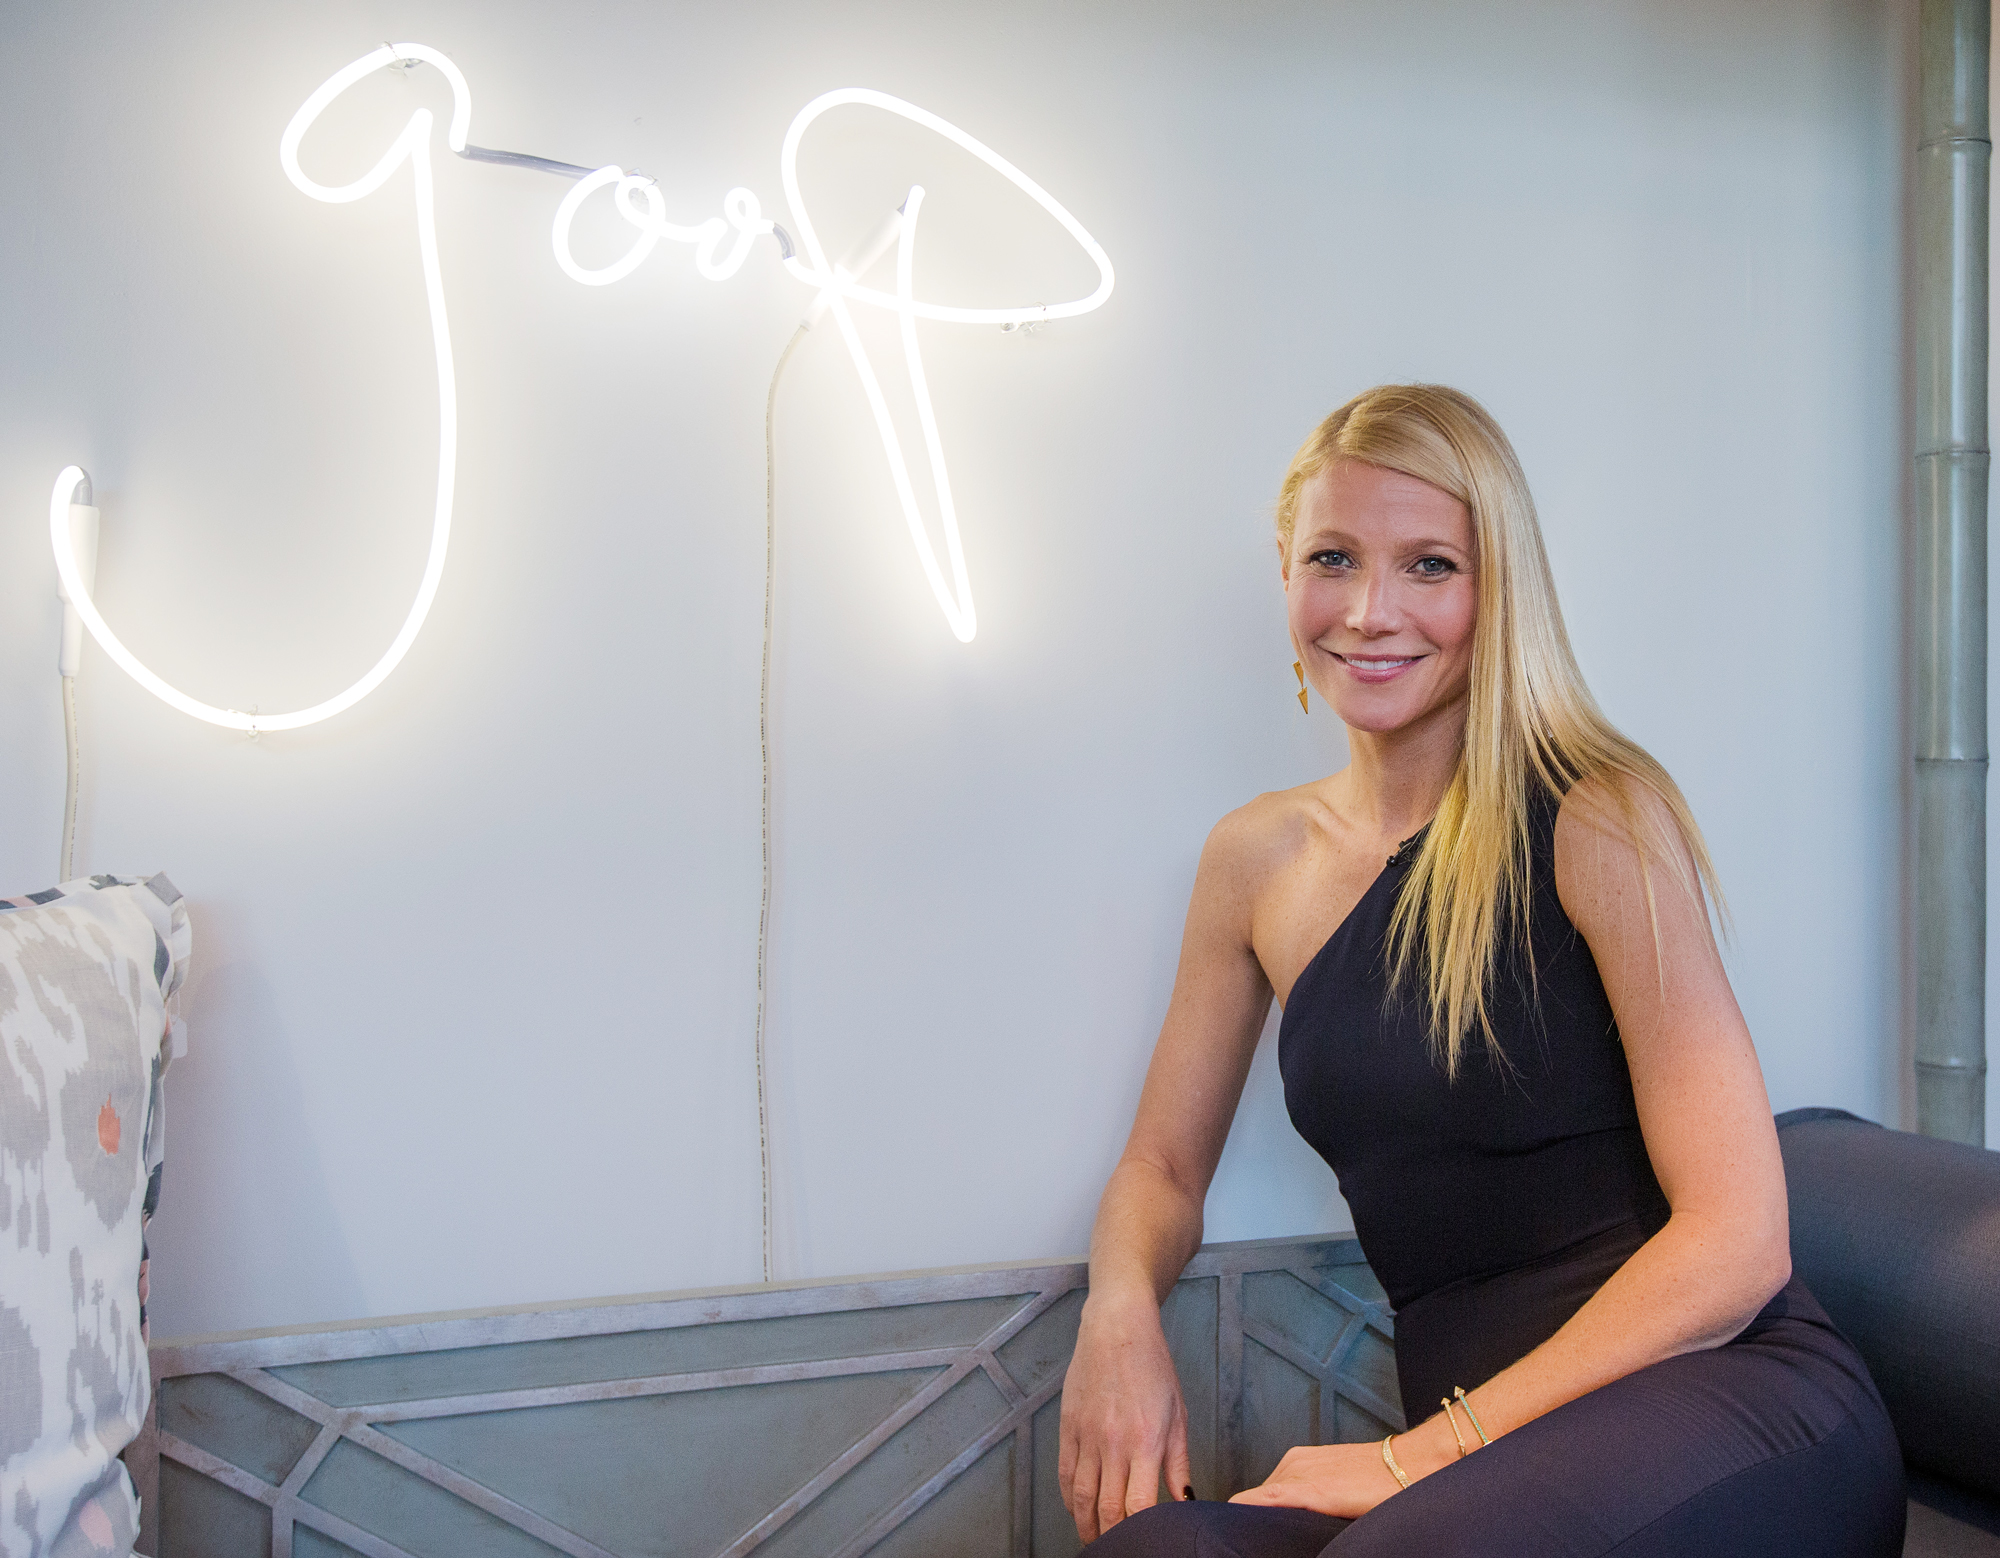 Gwyneth Paltrow Dishes on Her Travel Tips and New Clothing Line